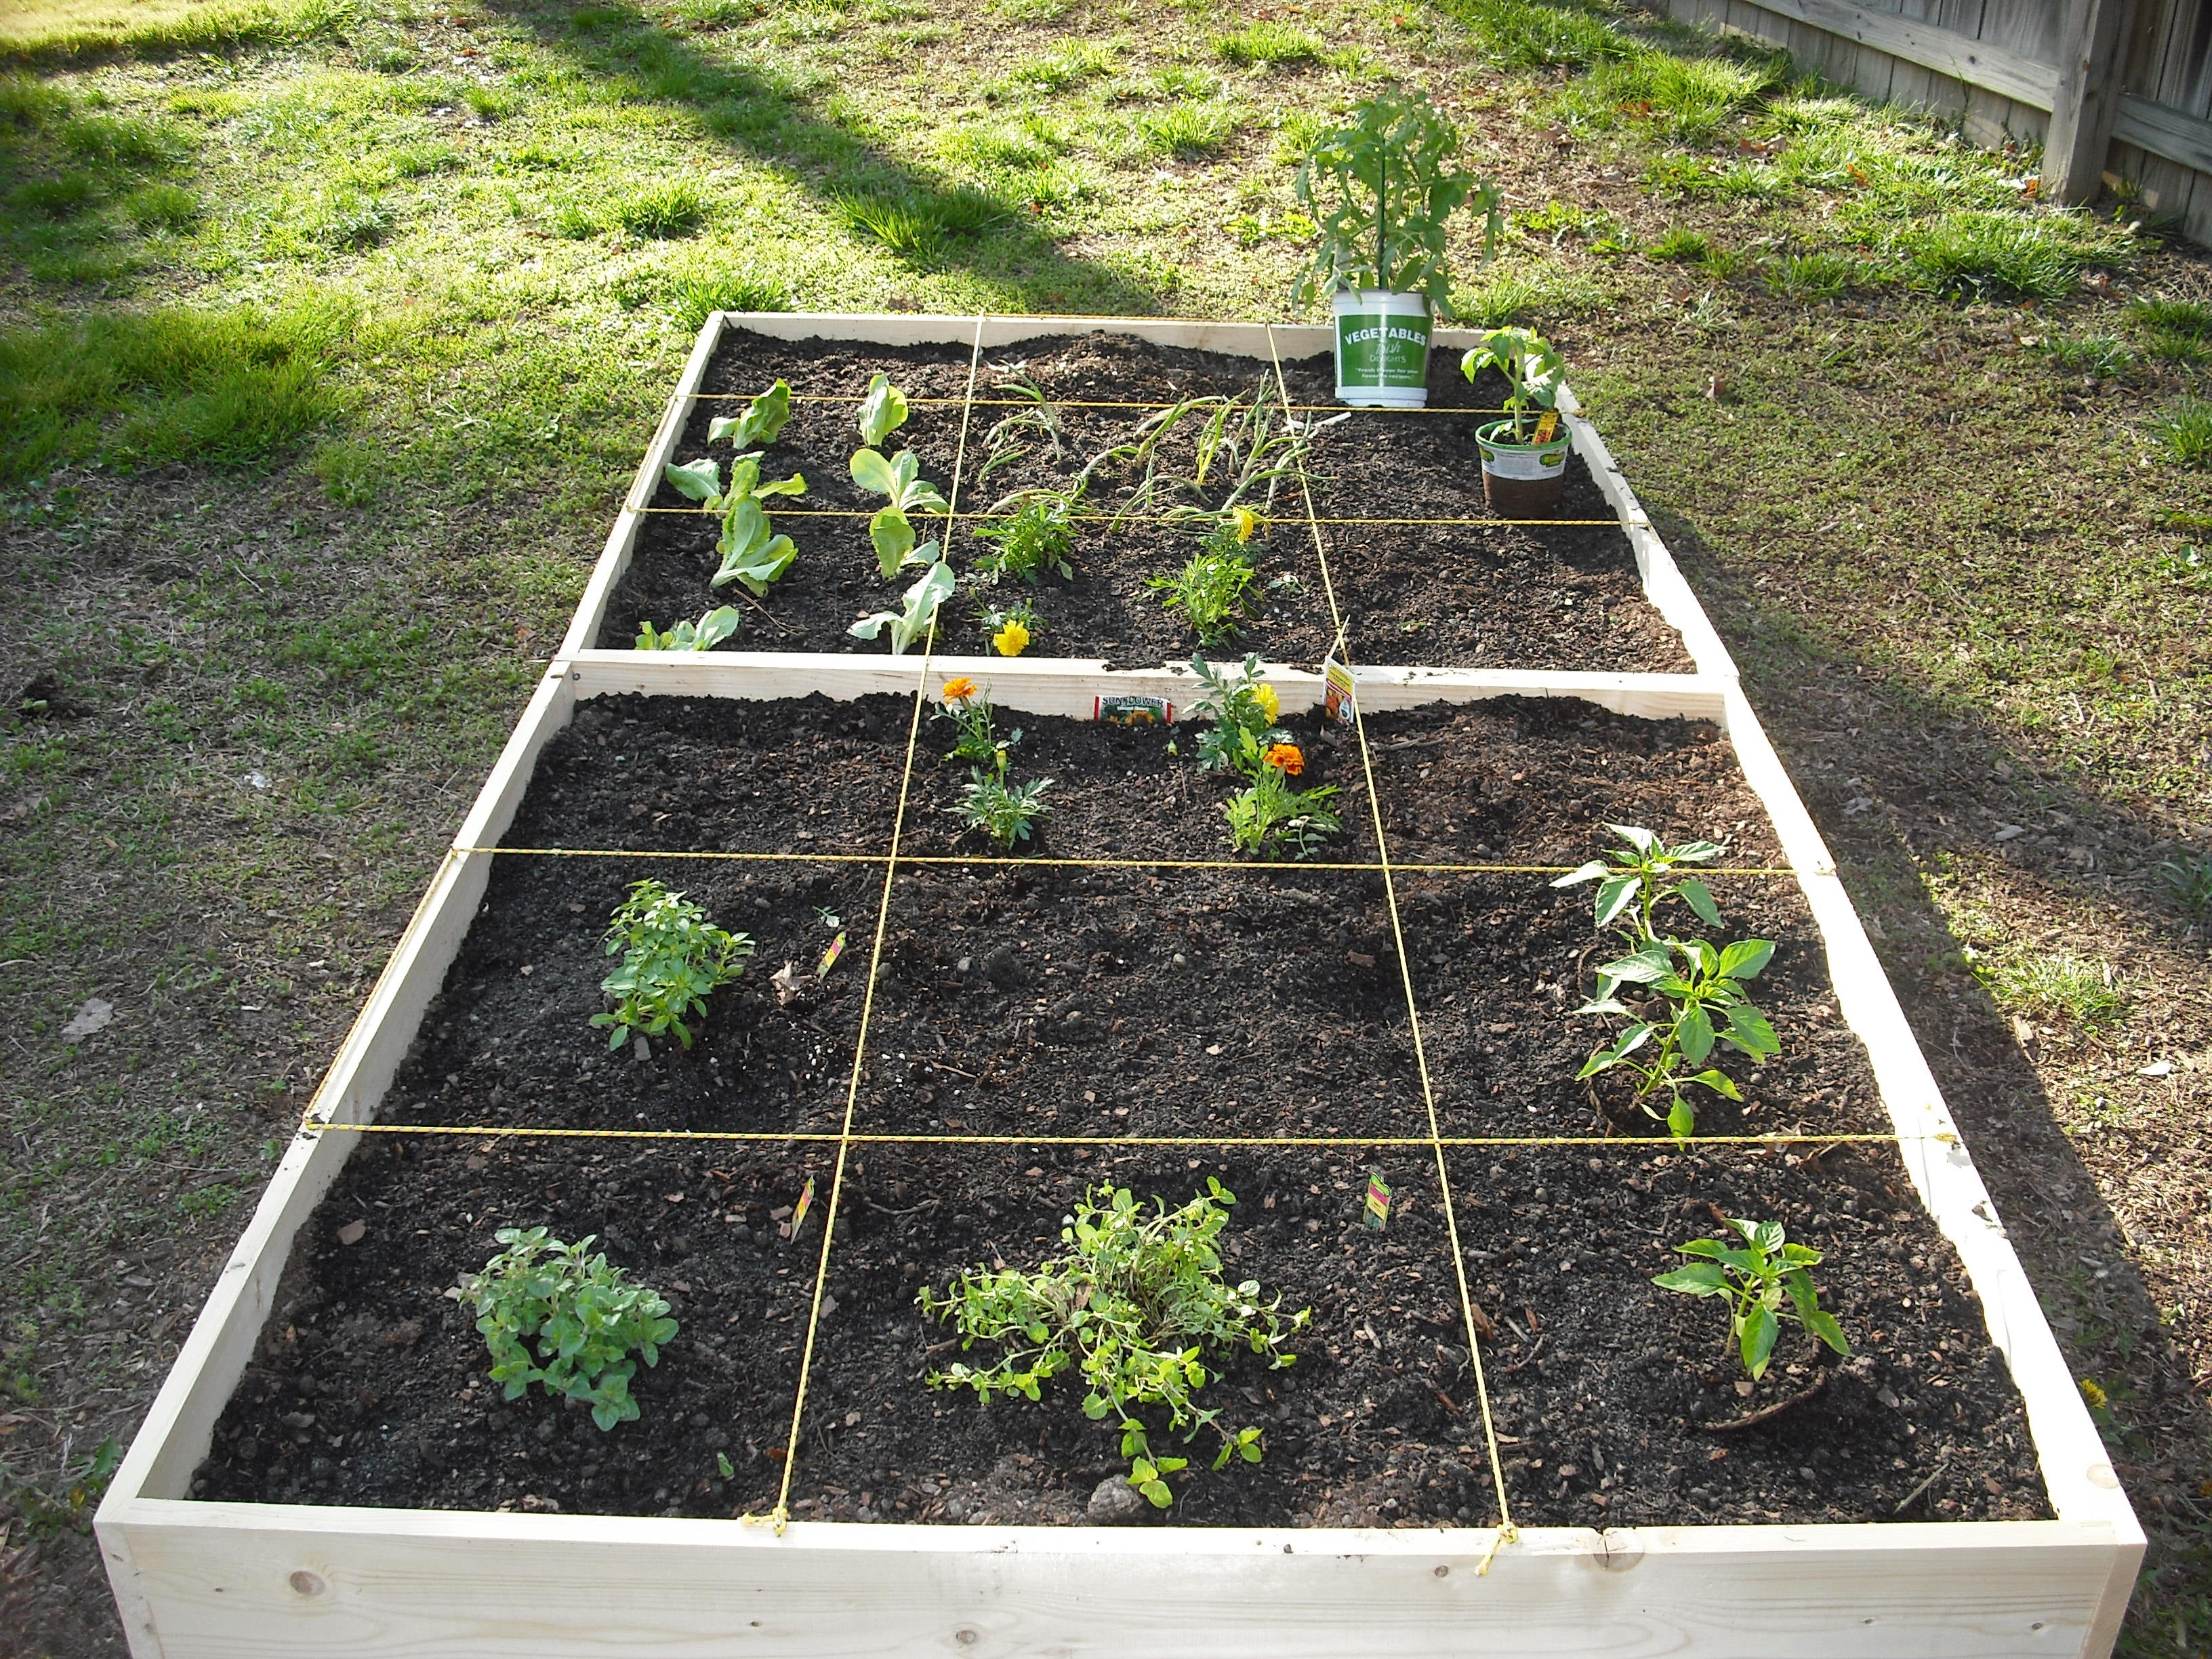 How To Make An Easy Square Foot Garden 9 Steps Instructables